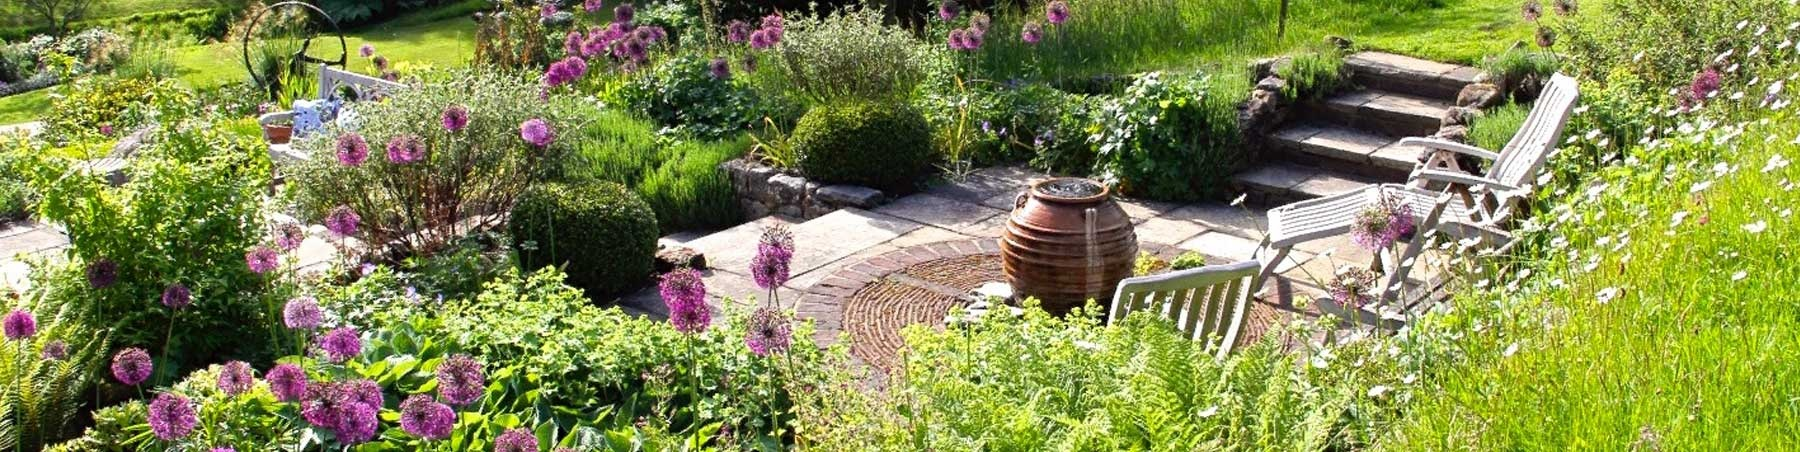 good garden design kent sussex 13 be inspiration article